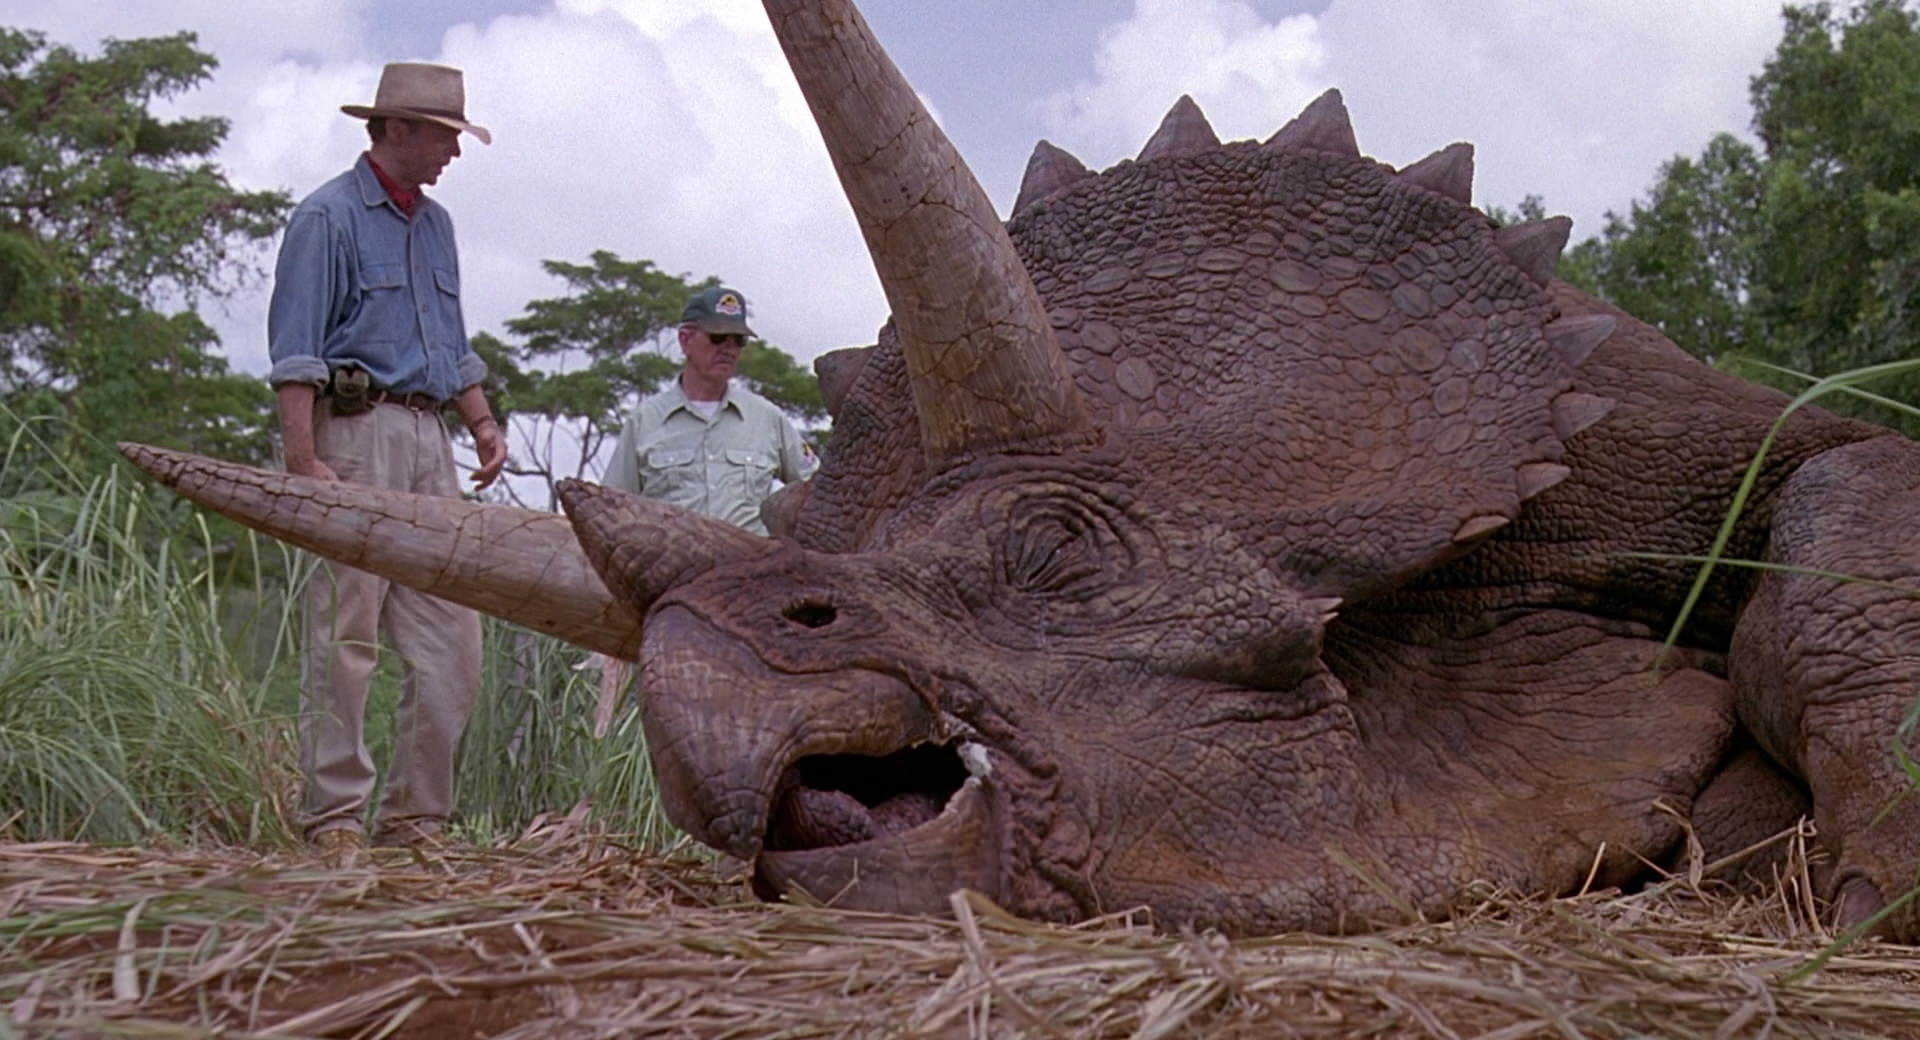 Triceratops Facts for Kids, Students and Adults